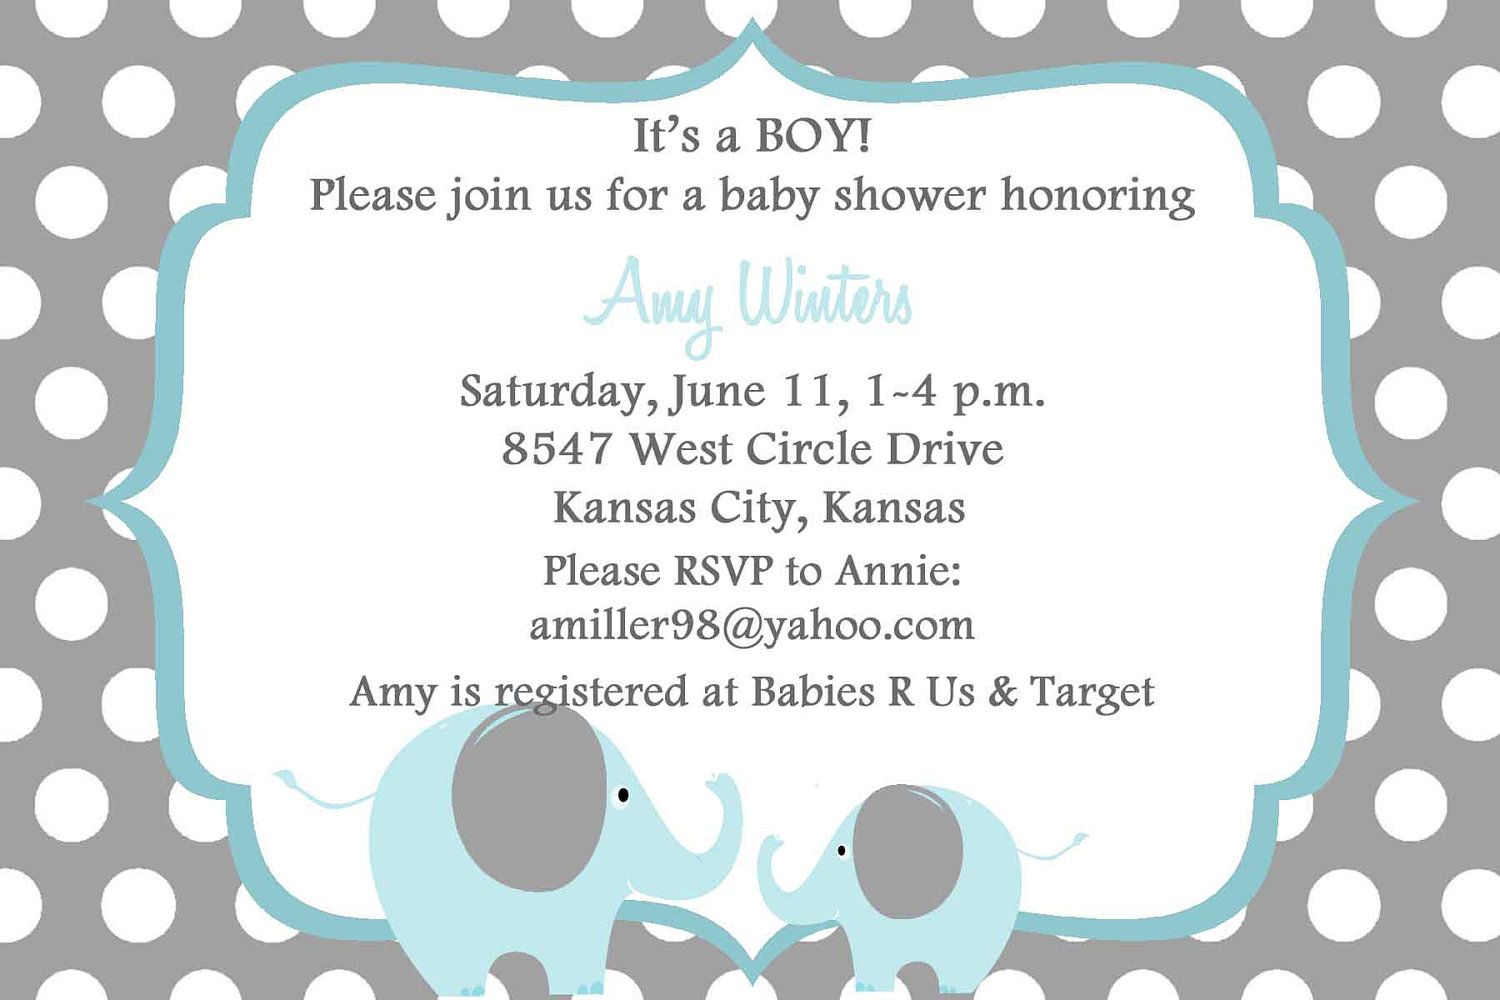 Full Size of Baby Shower:inspirational Elephant Baby Shower Invitations Photo Concepts Elephant Baby Shower Invitations Baby Shower Plates Baby Shower Lunch Menu Baby Shower Creative Baby Shower Gifts Baby Shower Favor Ideas Baby Shower Game Ideas Nice Printable Elephant Baby Shower Invitations 43